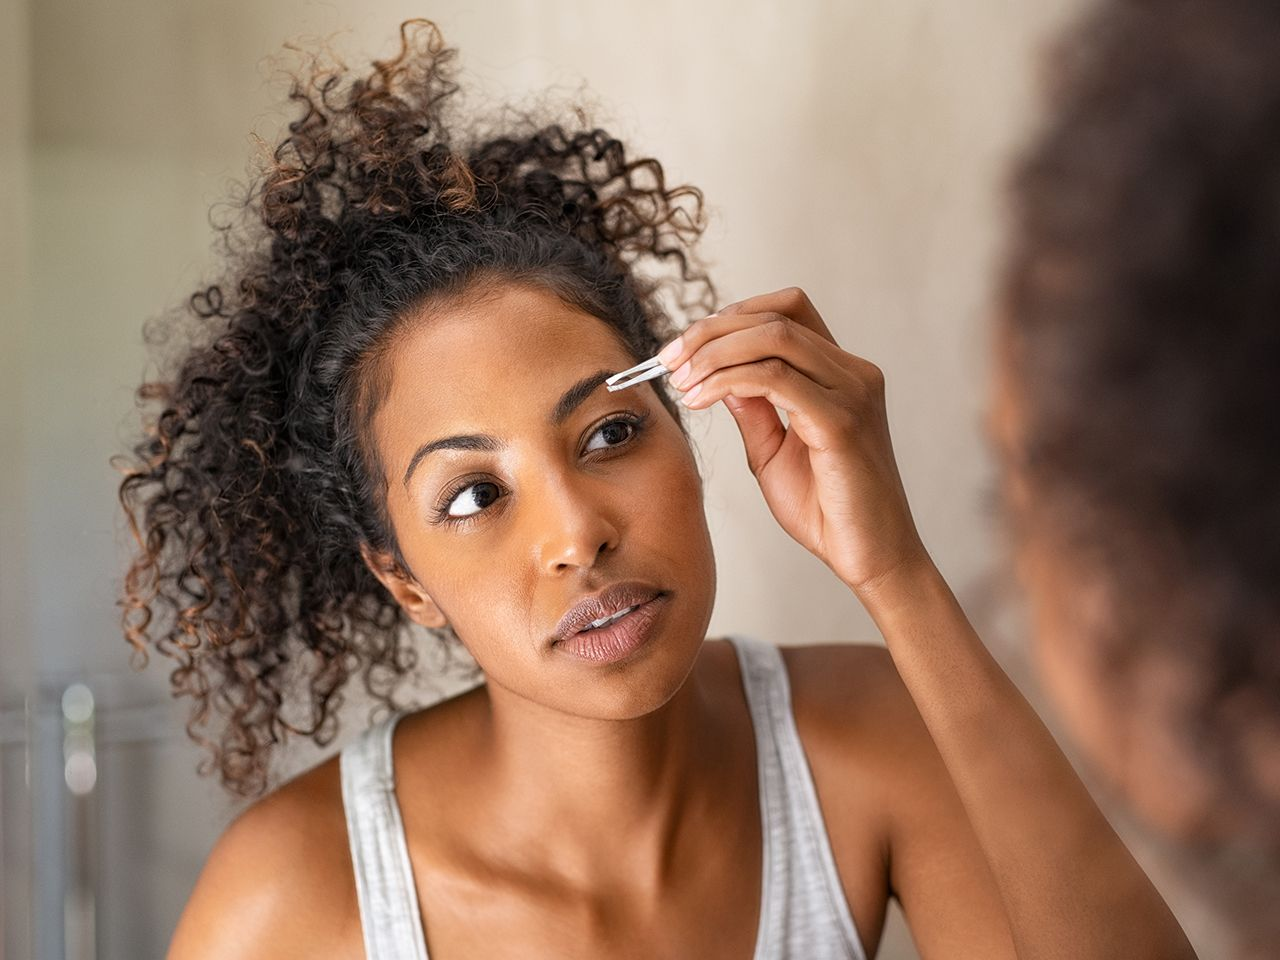 How To Shape And Groom Your Eyebrows At Home | Eyebrow ...